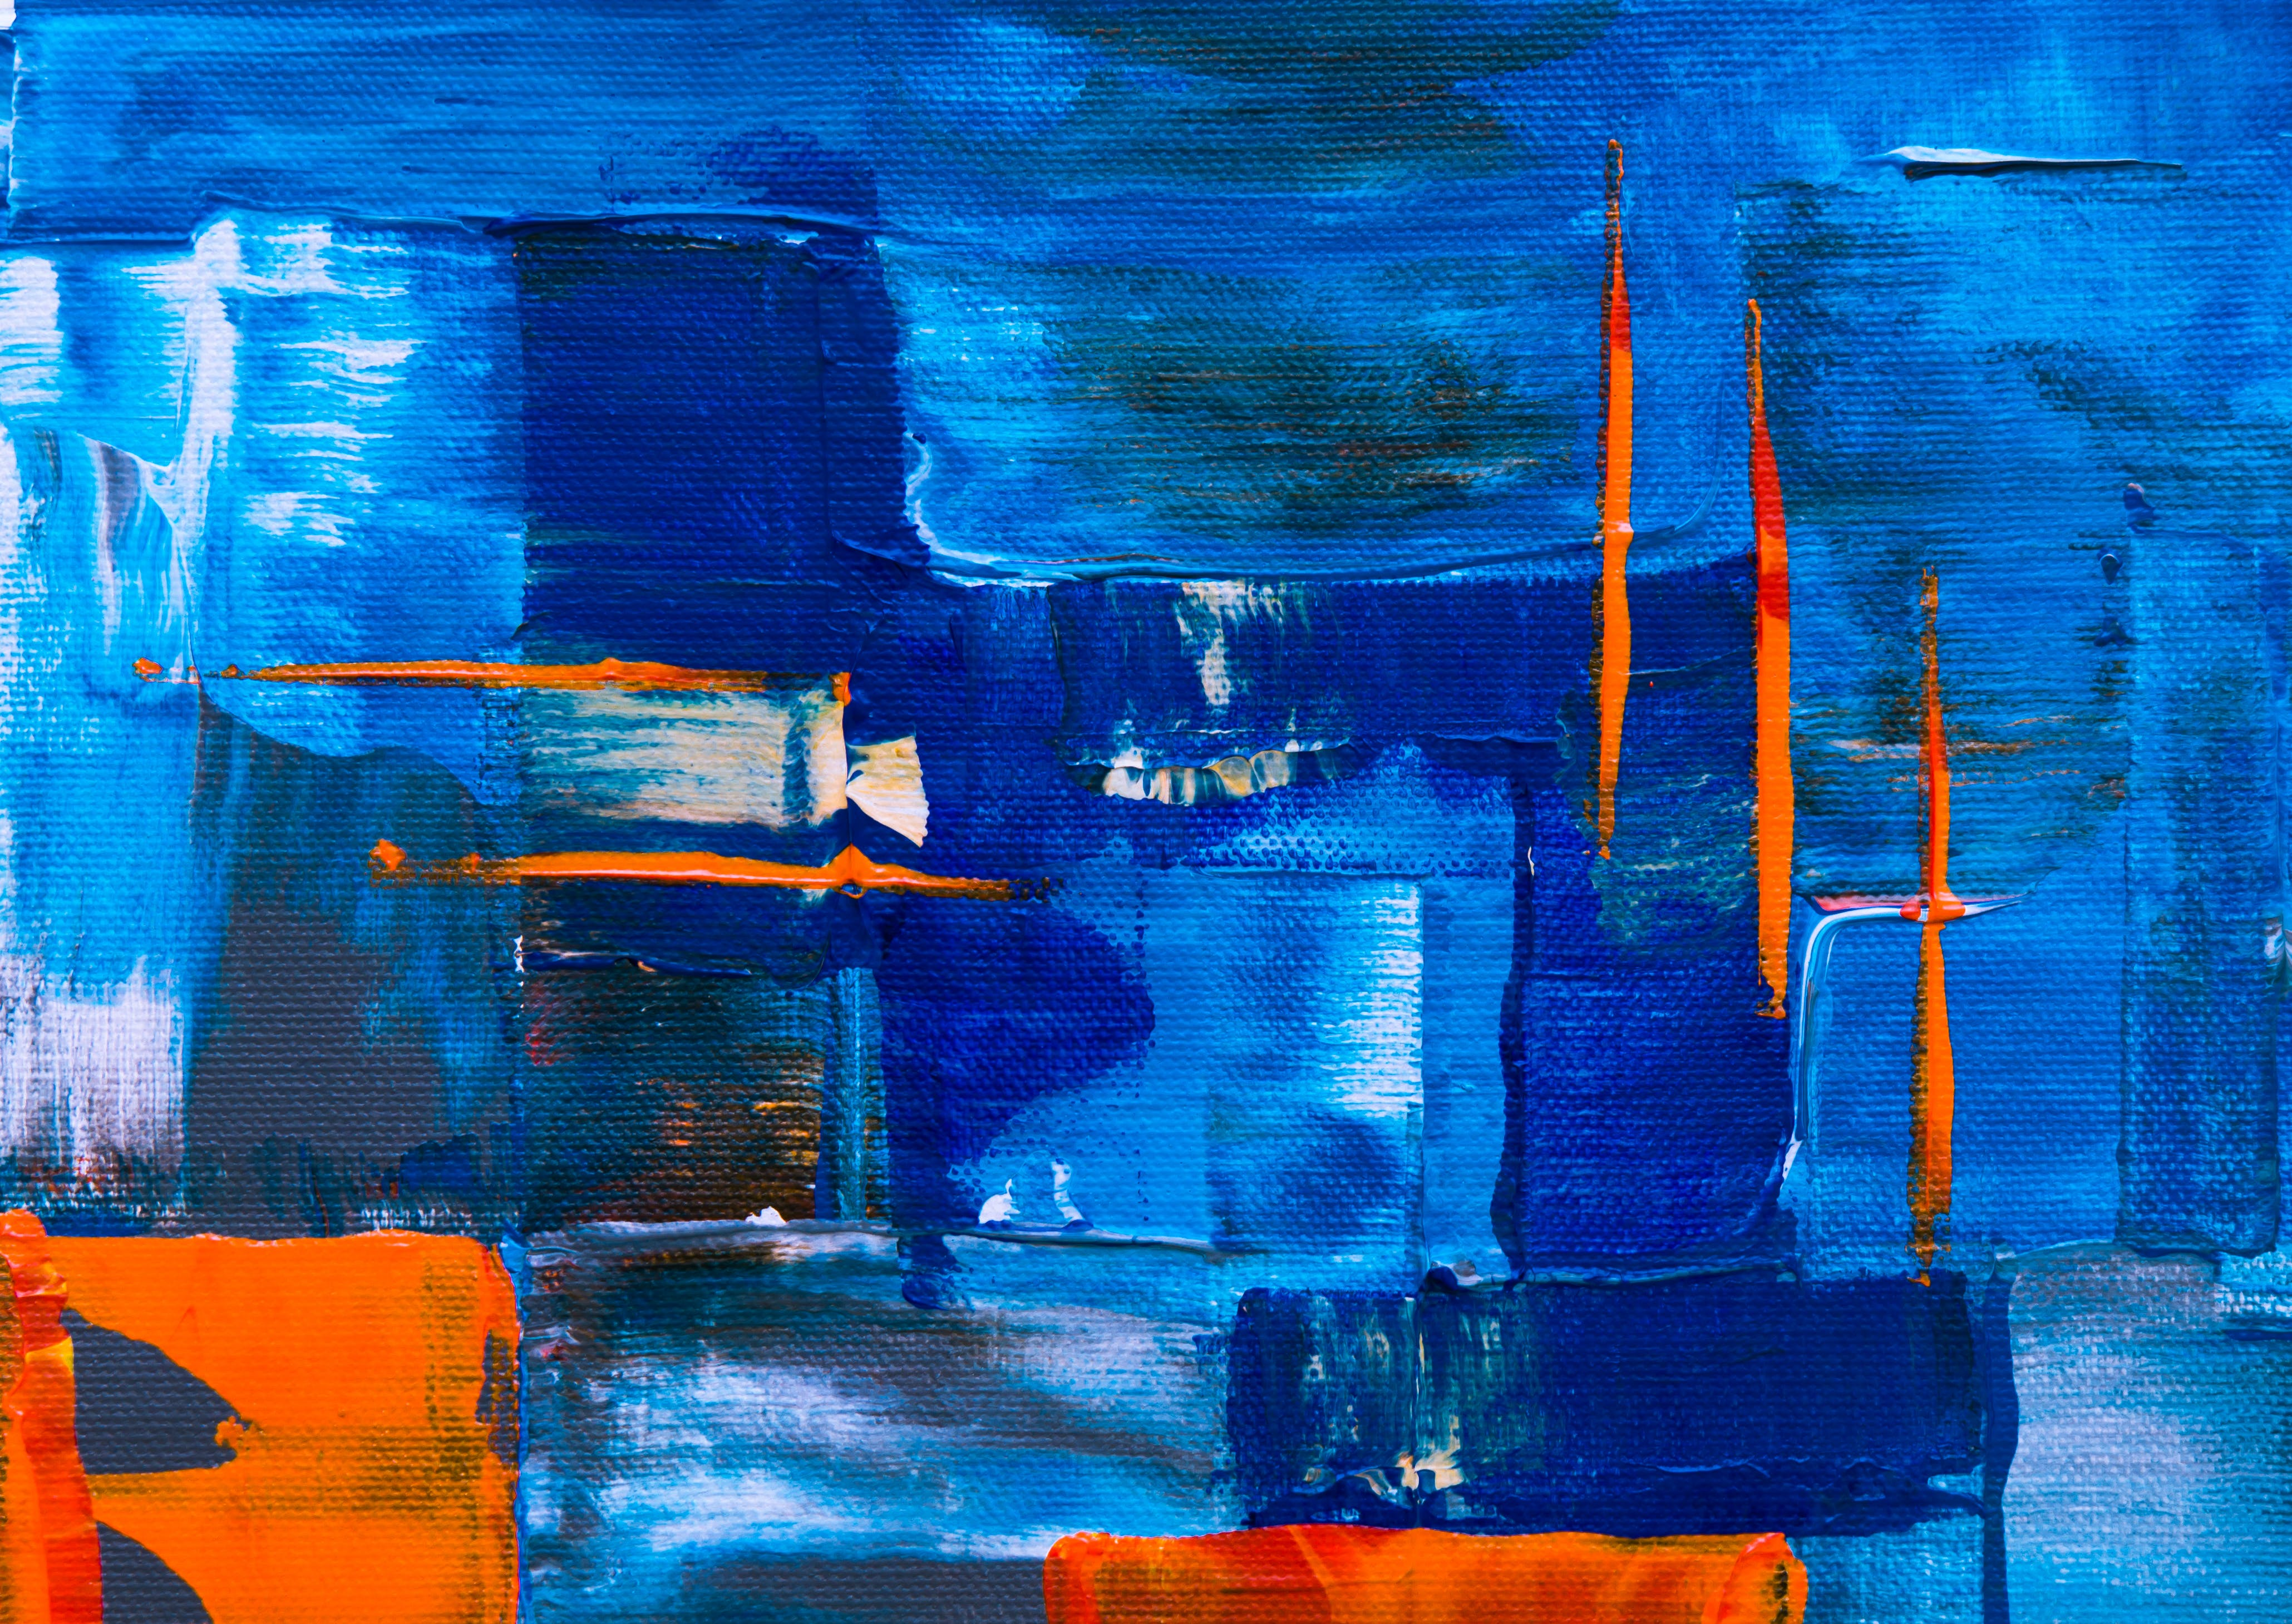 Blue, Orange, White, and Green Abstract Painting